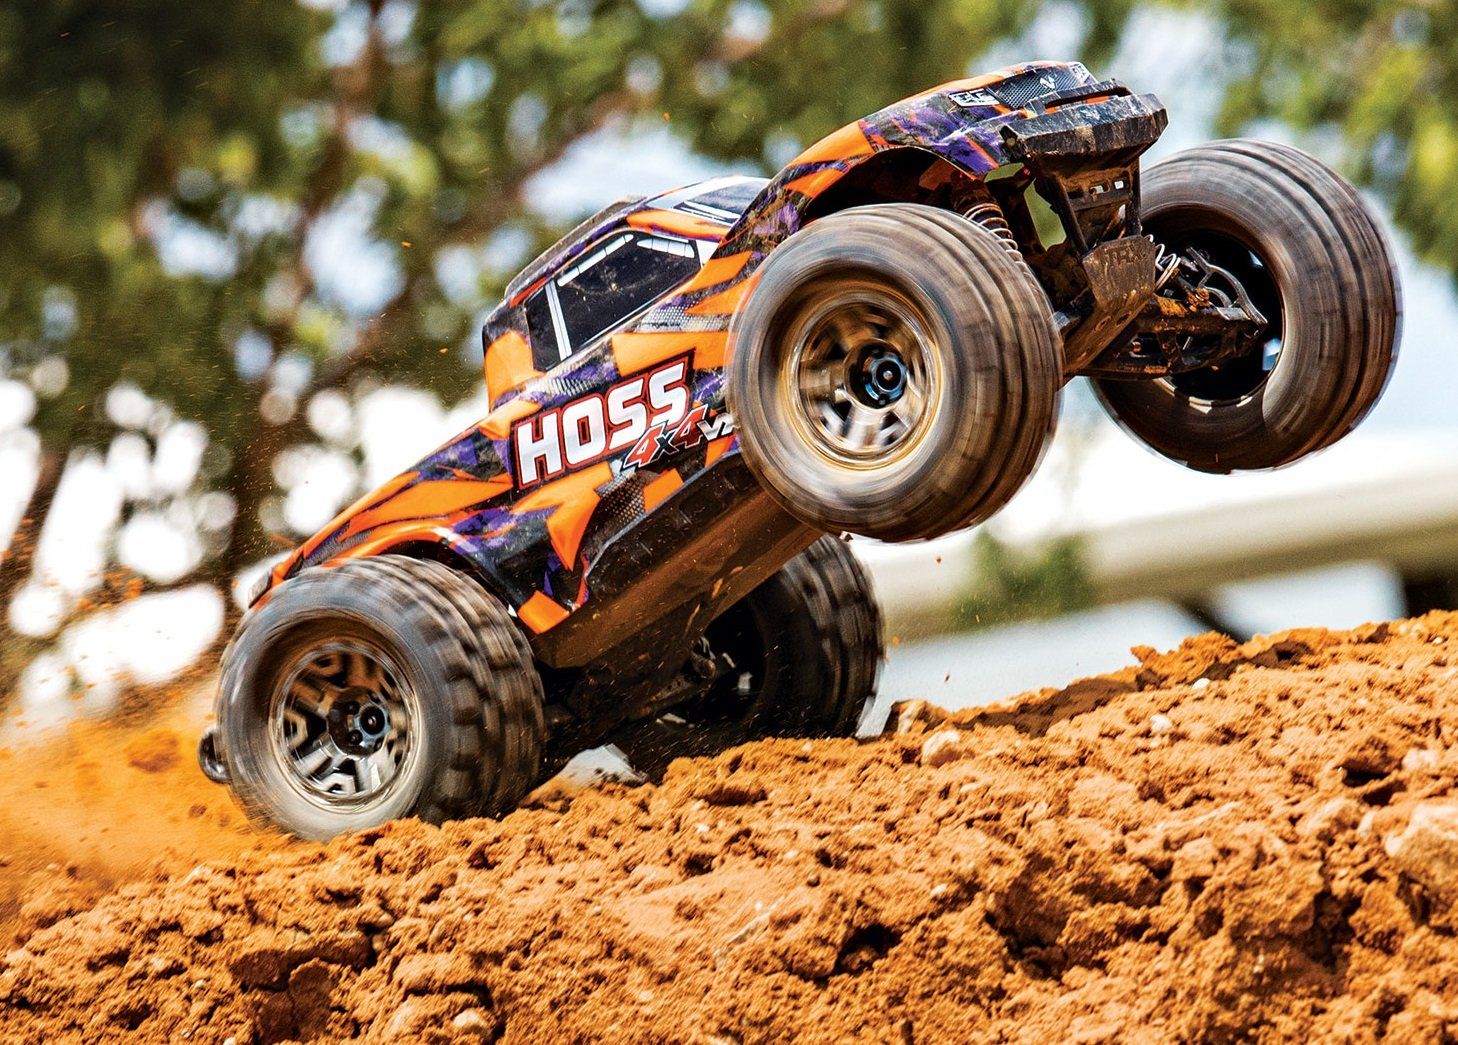 Fandacycle Professional Gear and Apparel in Columbia MO 90076-4-Hoss-4x4-VXL-ORANGE-Dirt-Wheelie-1292